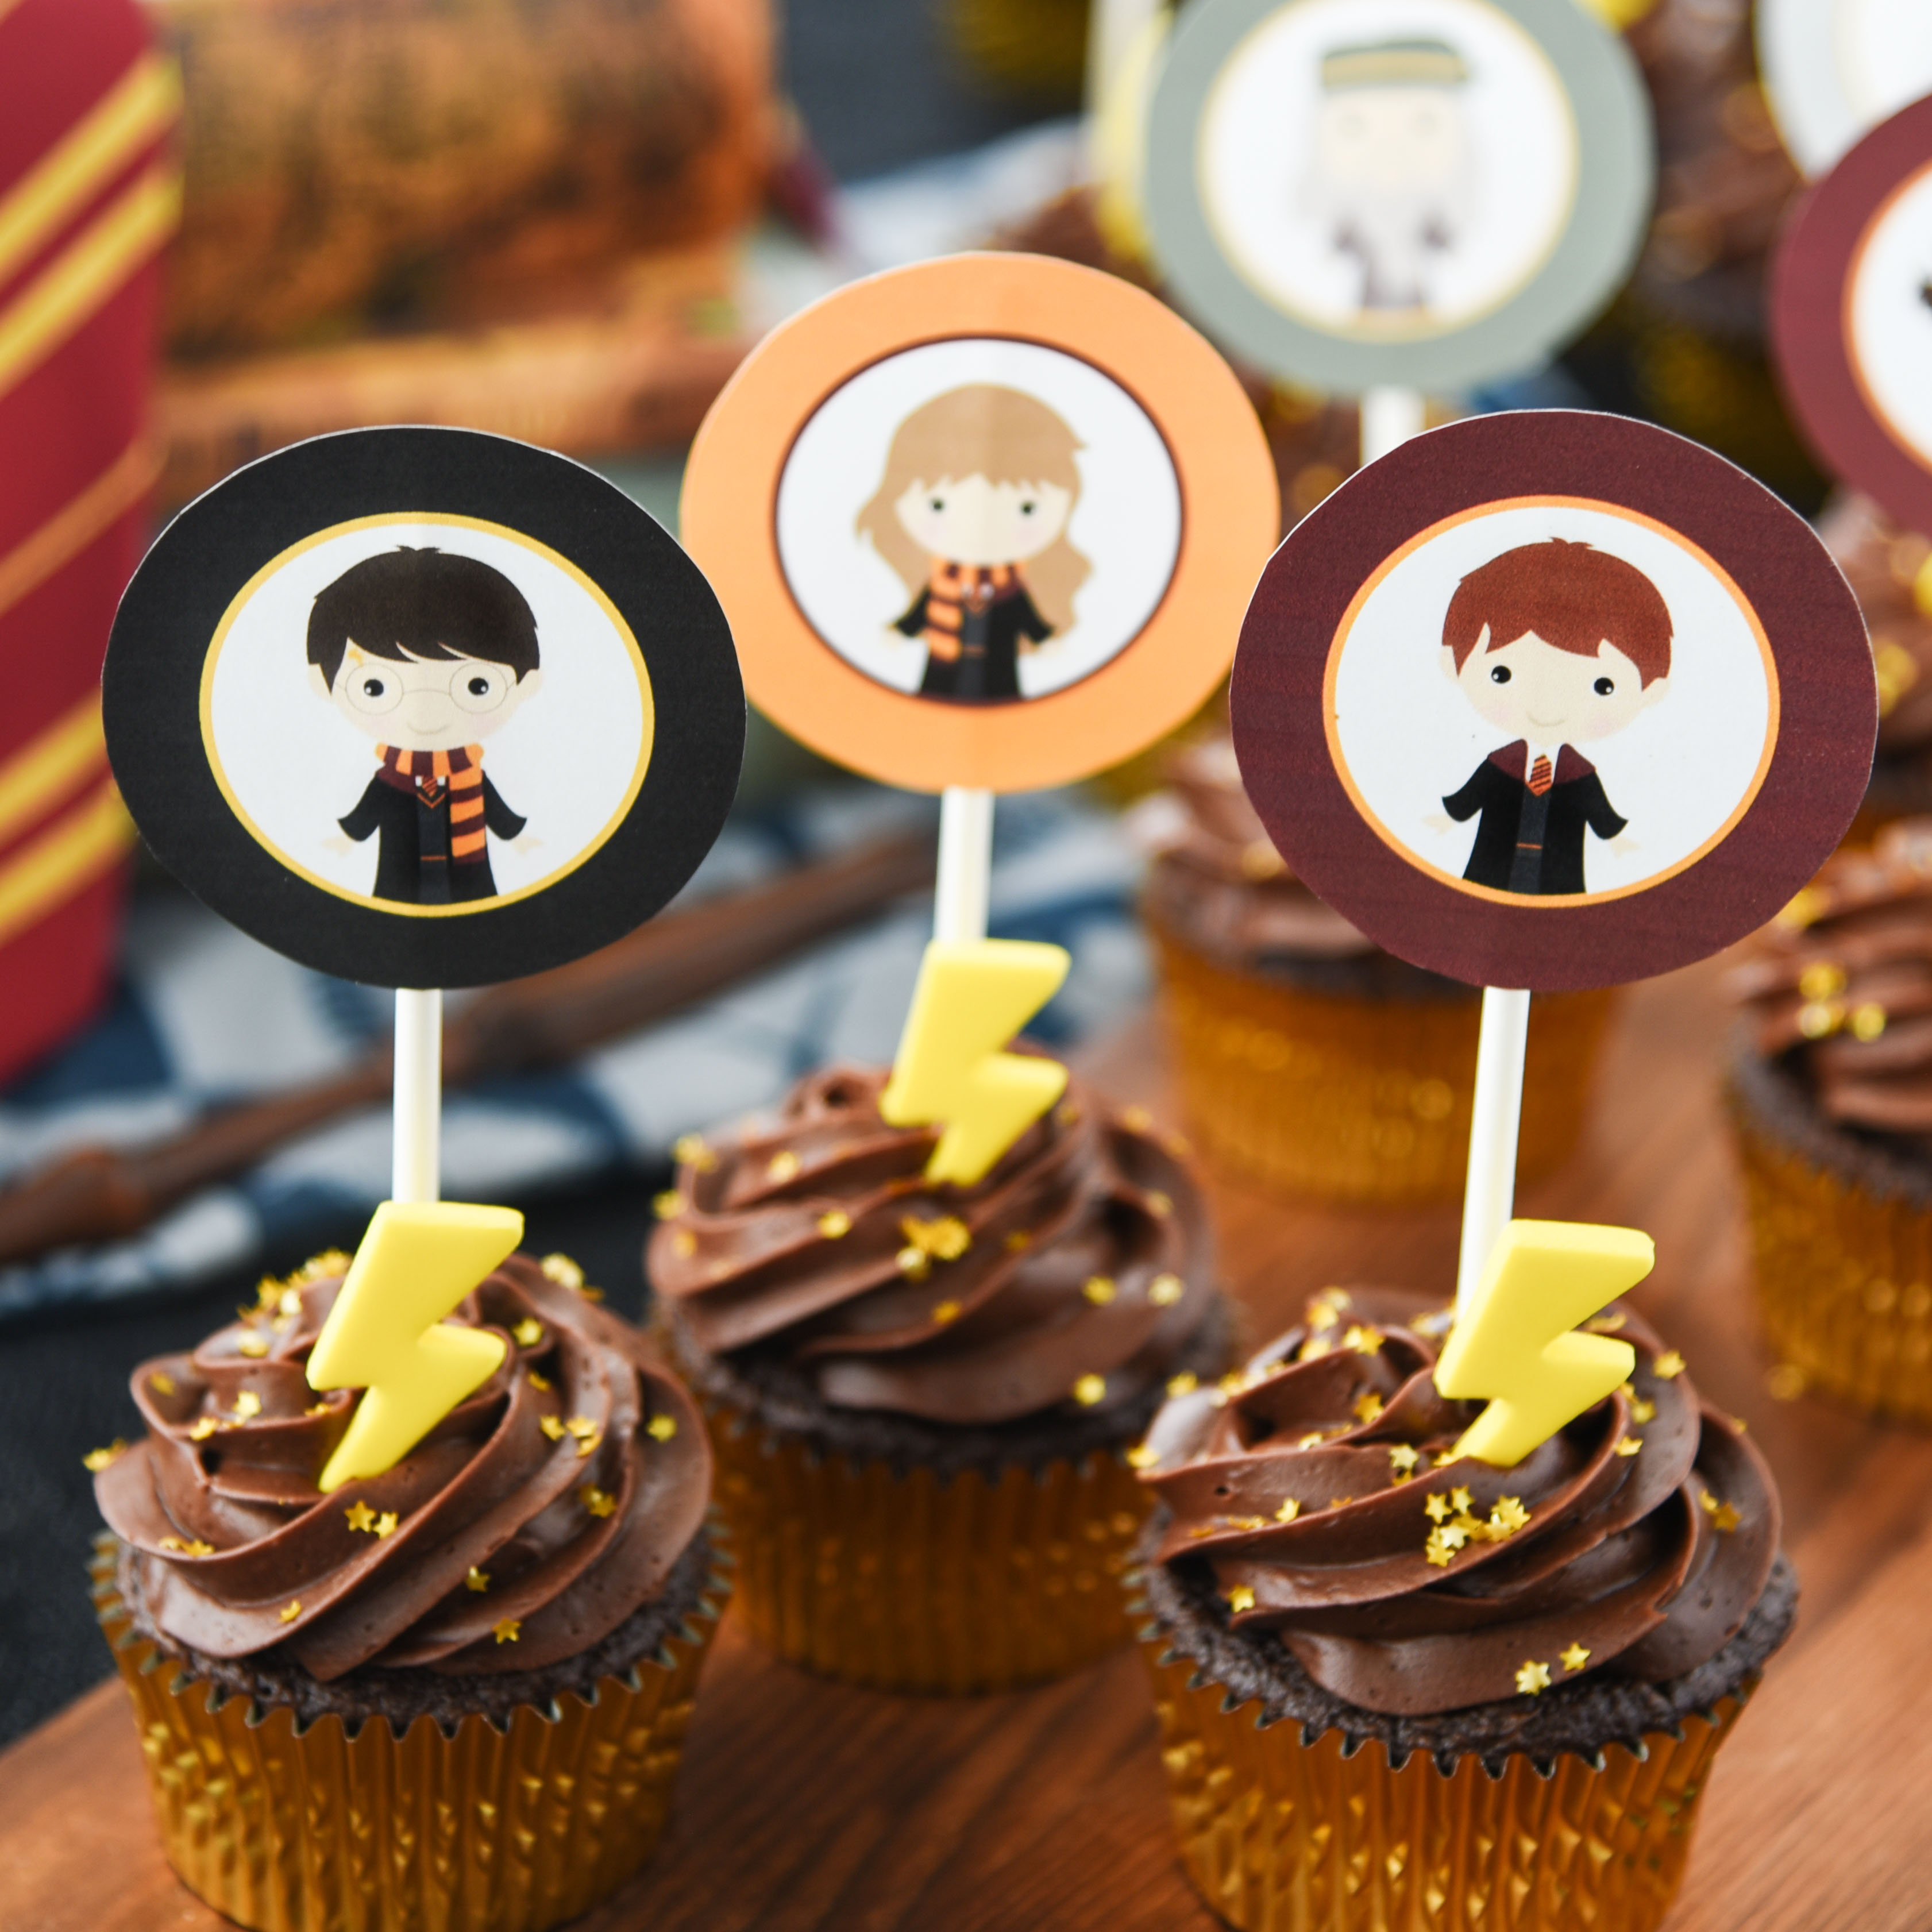 Harry Potter Cupcakes with Printable Toppers - Cupcake Diaries